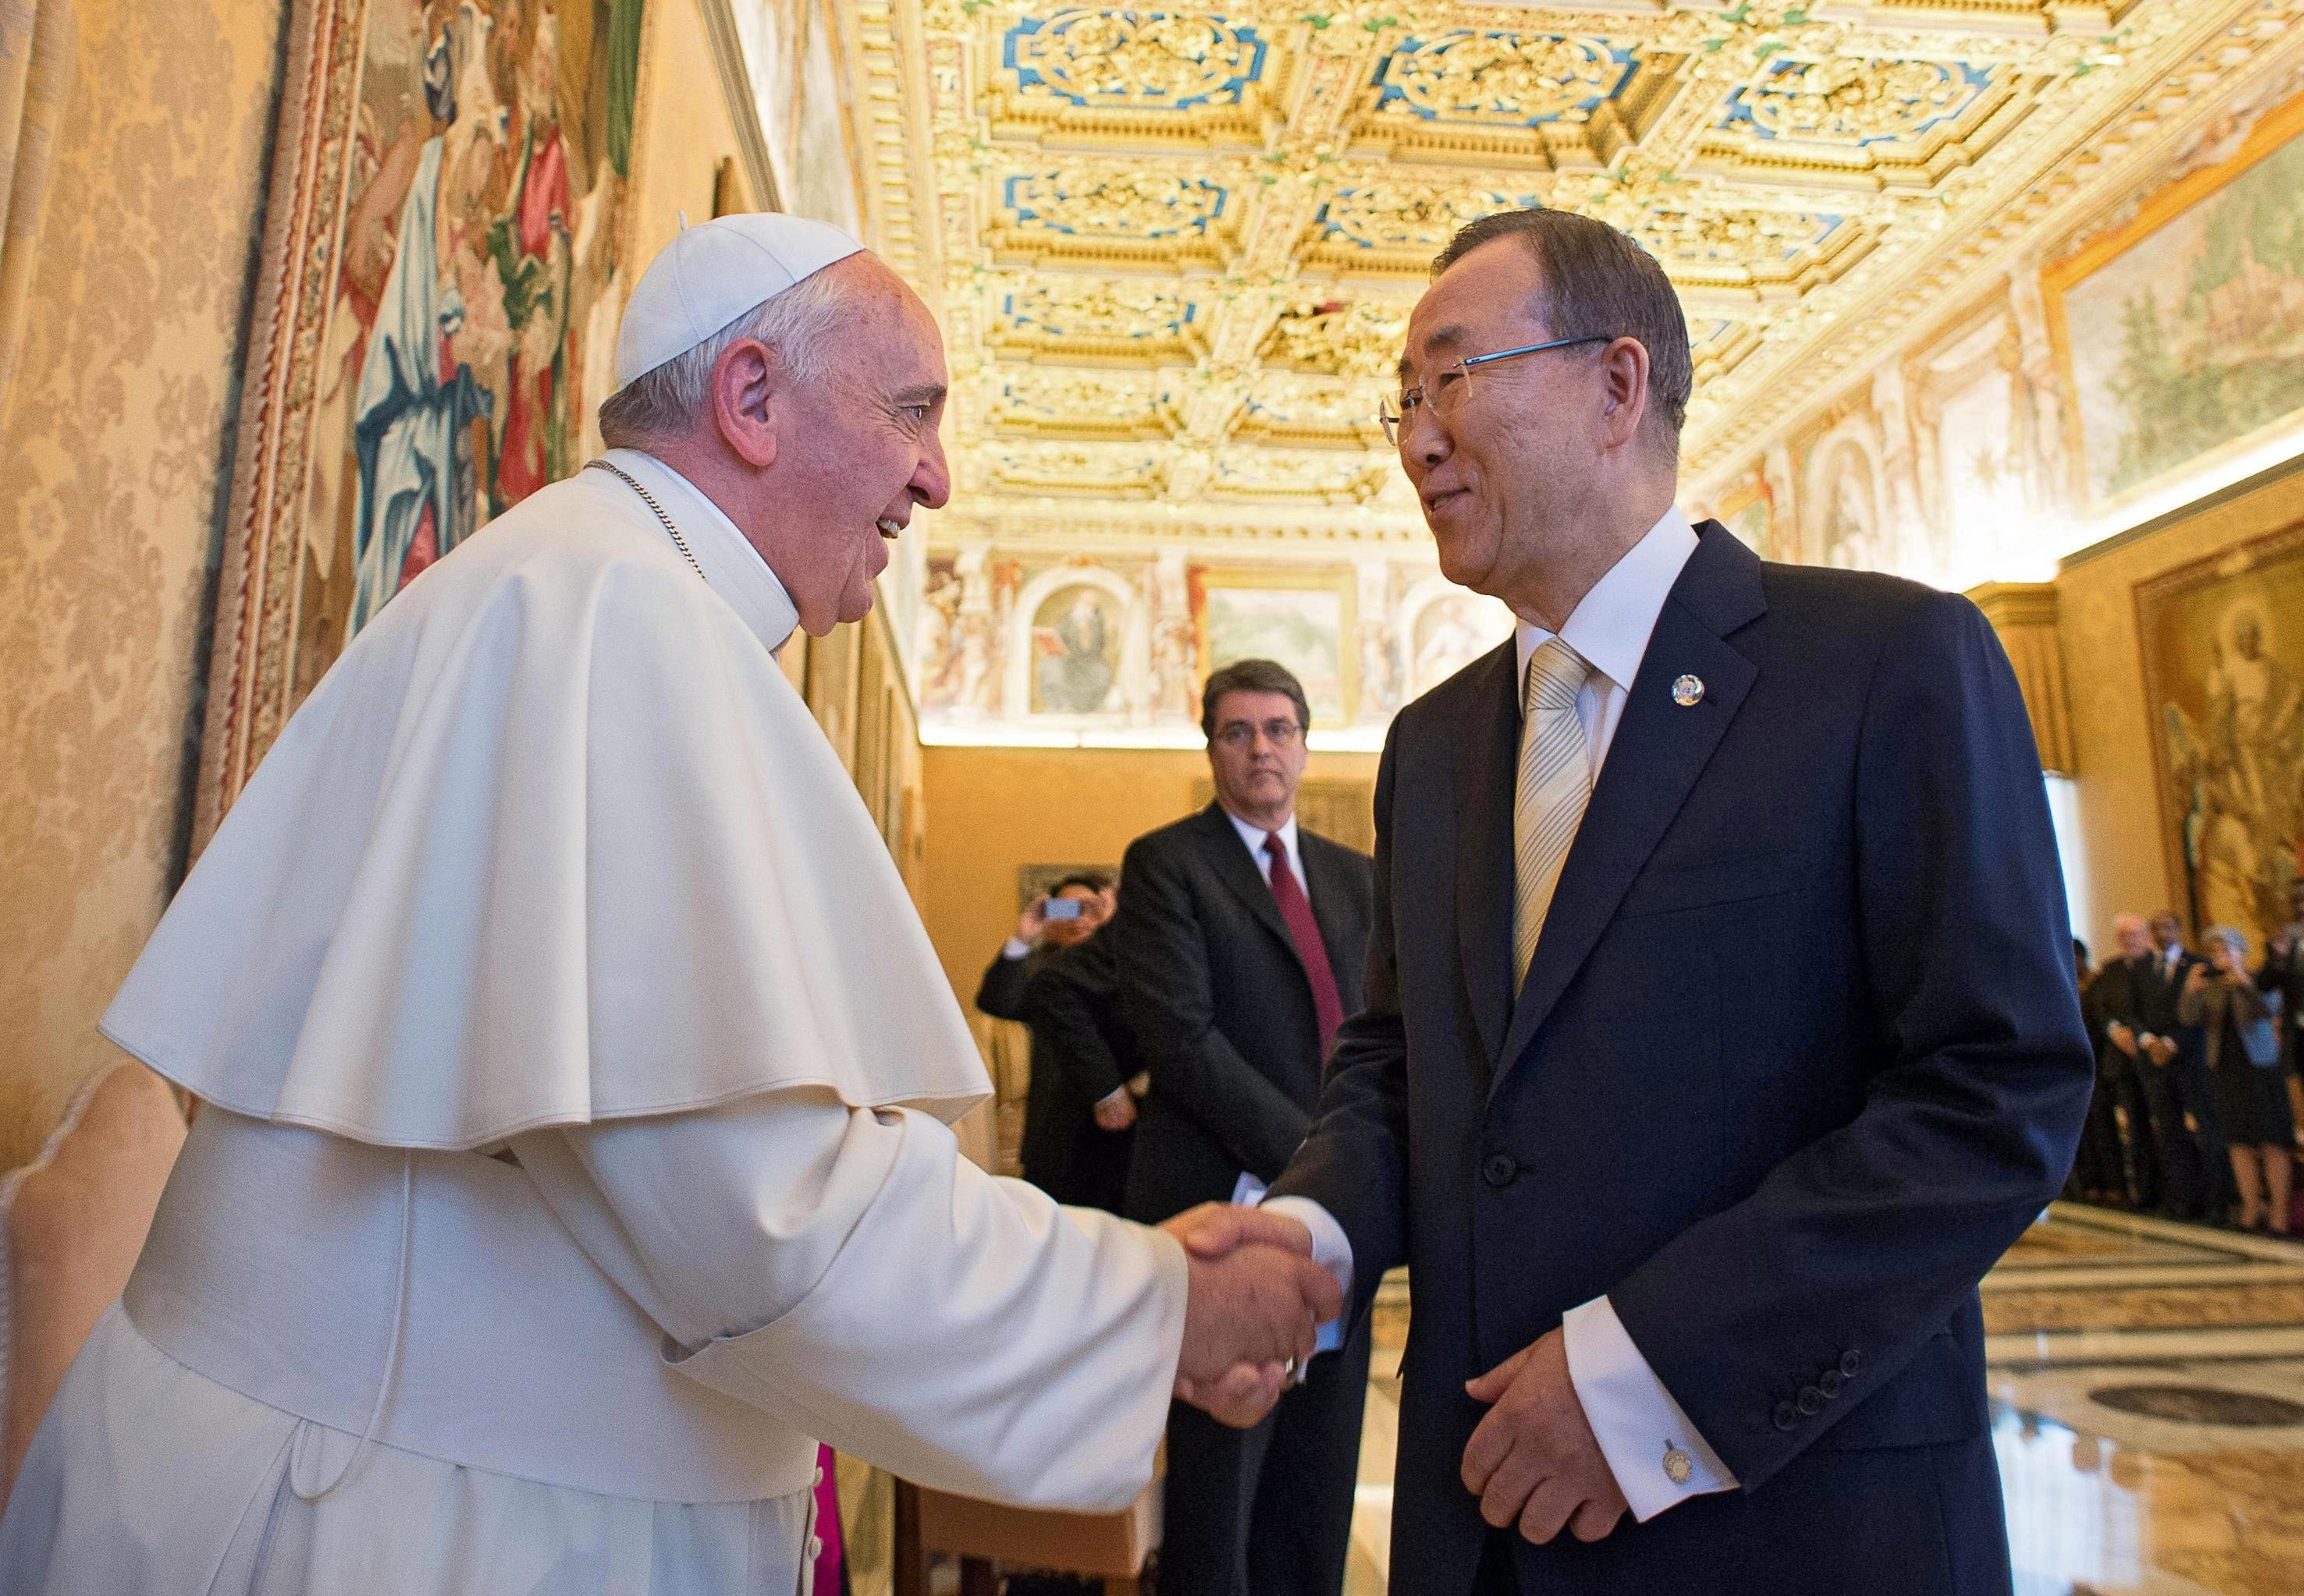 Pope Francis meets UN Secretary General Ban Ki-moon and members of UN System Chief Executives Board for the biannual meeting on strategic coordination in the Consistory Hall of the Apostolic Palace in Vatican City on May 9, 2014.